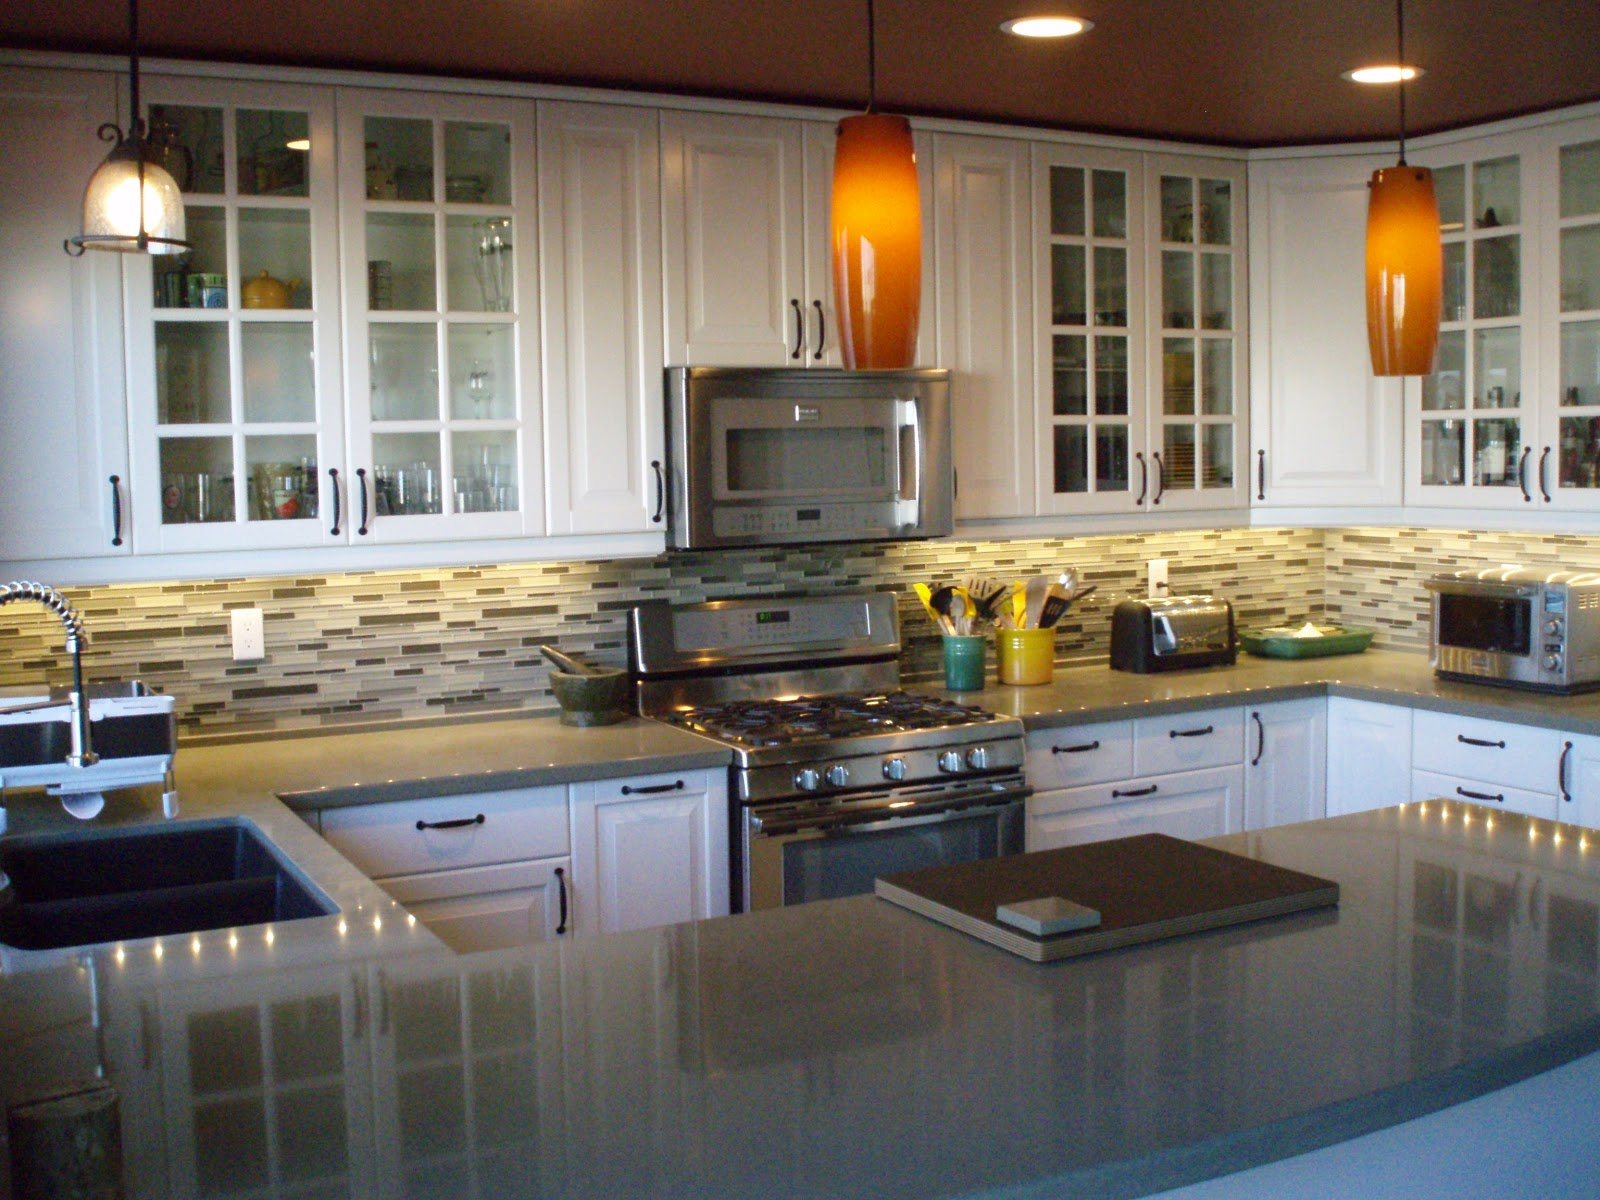 Marvelous cost of new kitchen cabinets 2015 for New kitchen cabinets